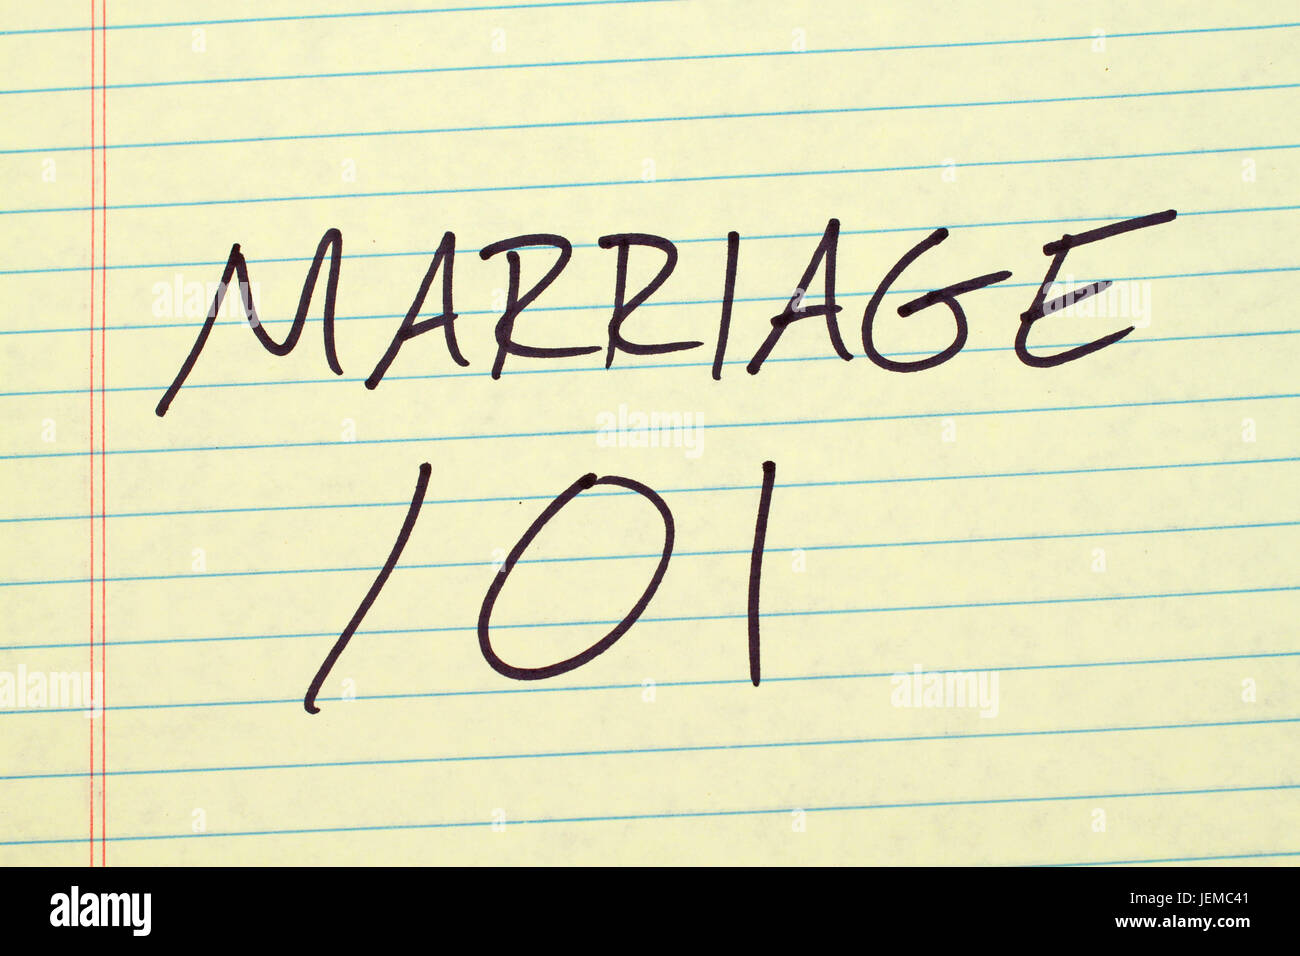 The words 'Marriage 101' on a yellow legal pad - Stock Image